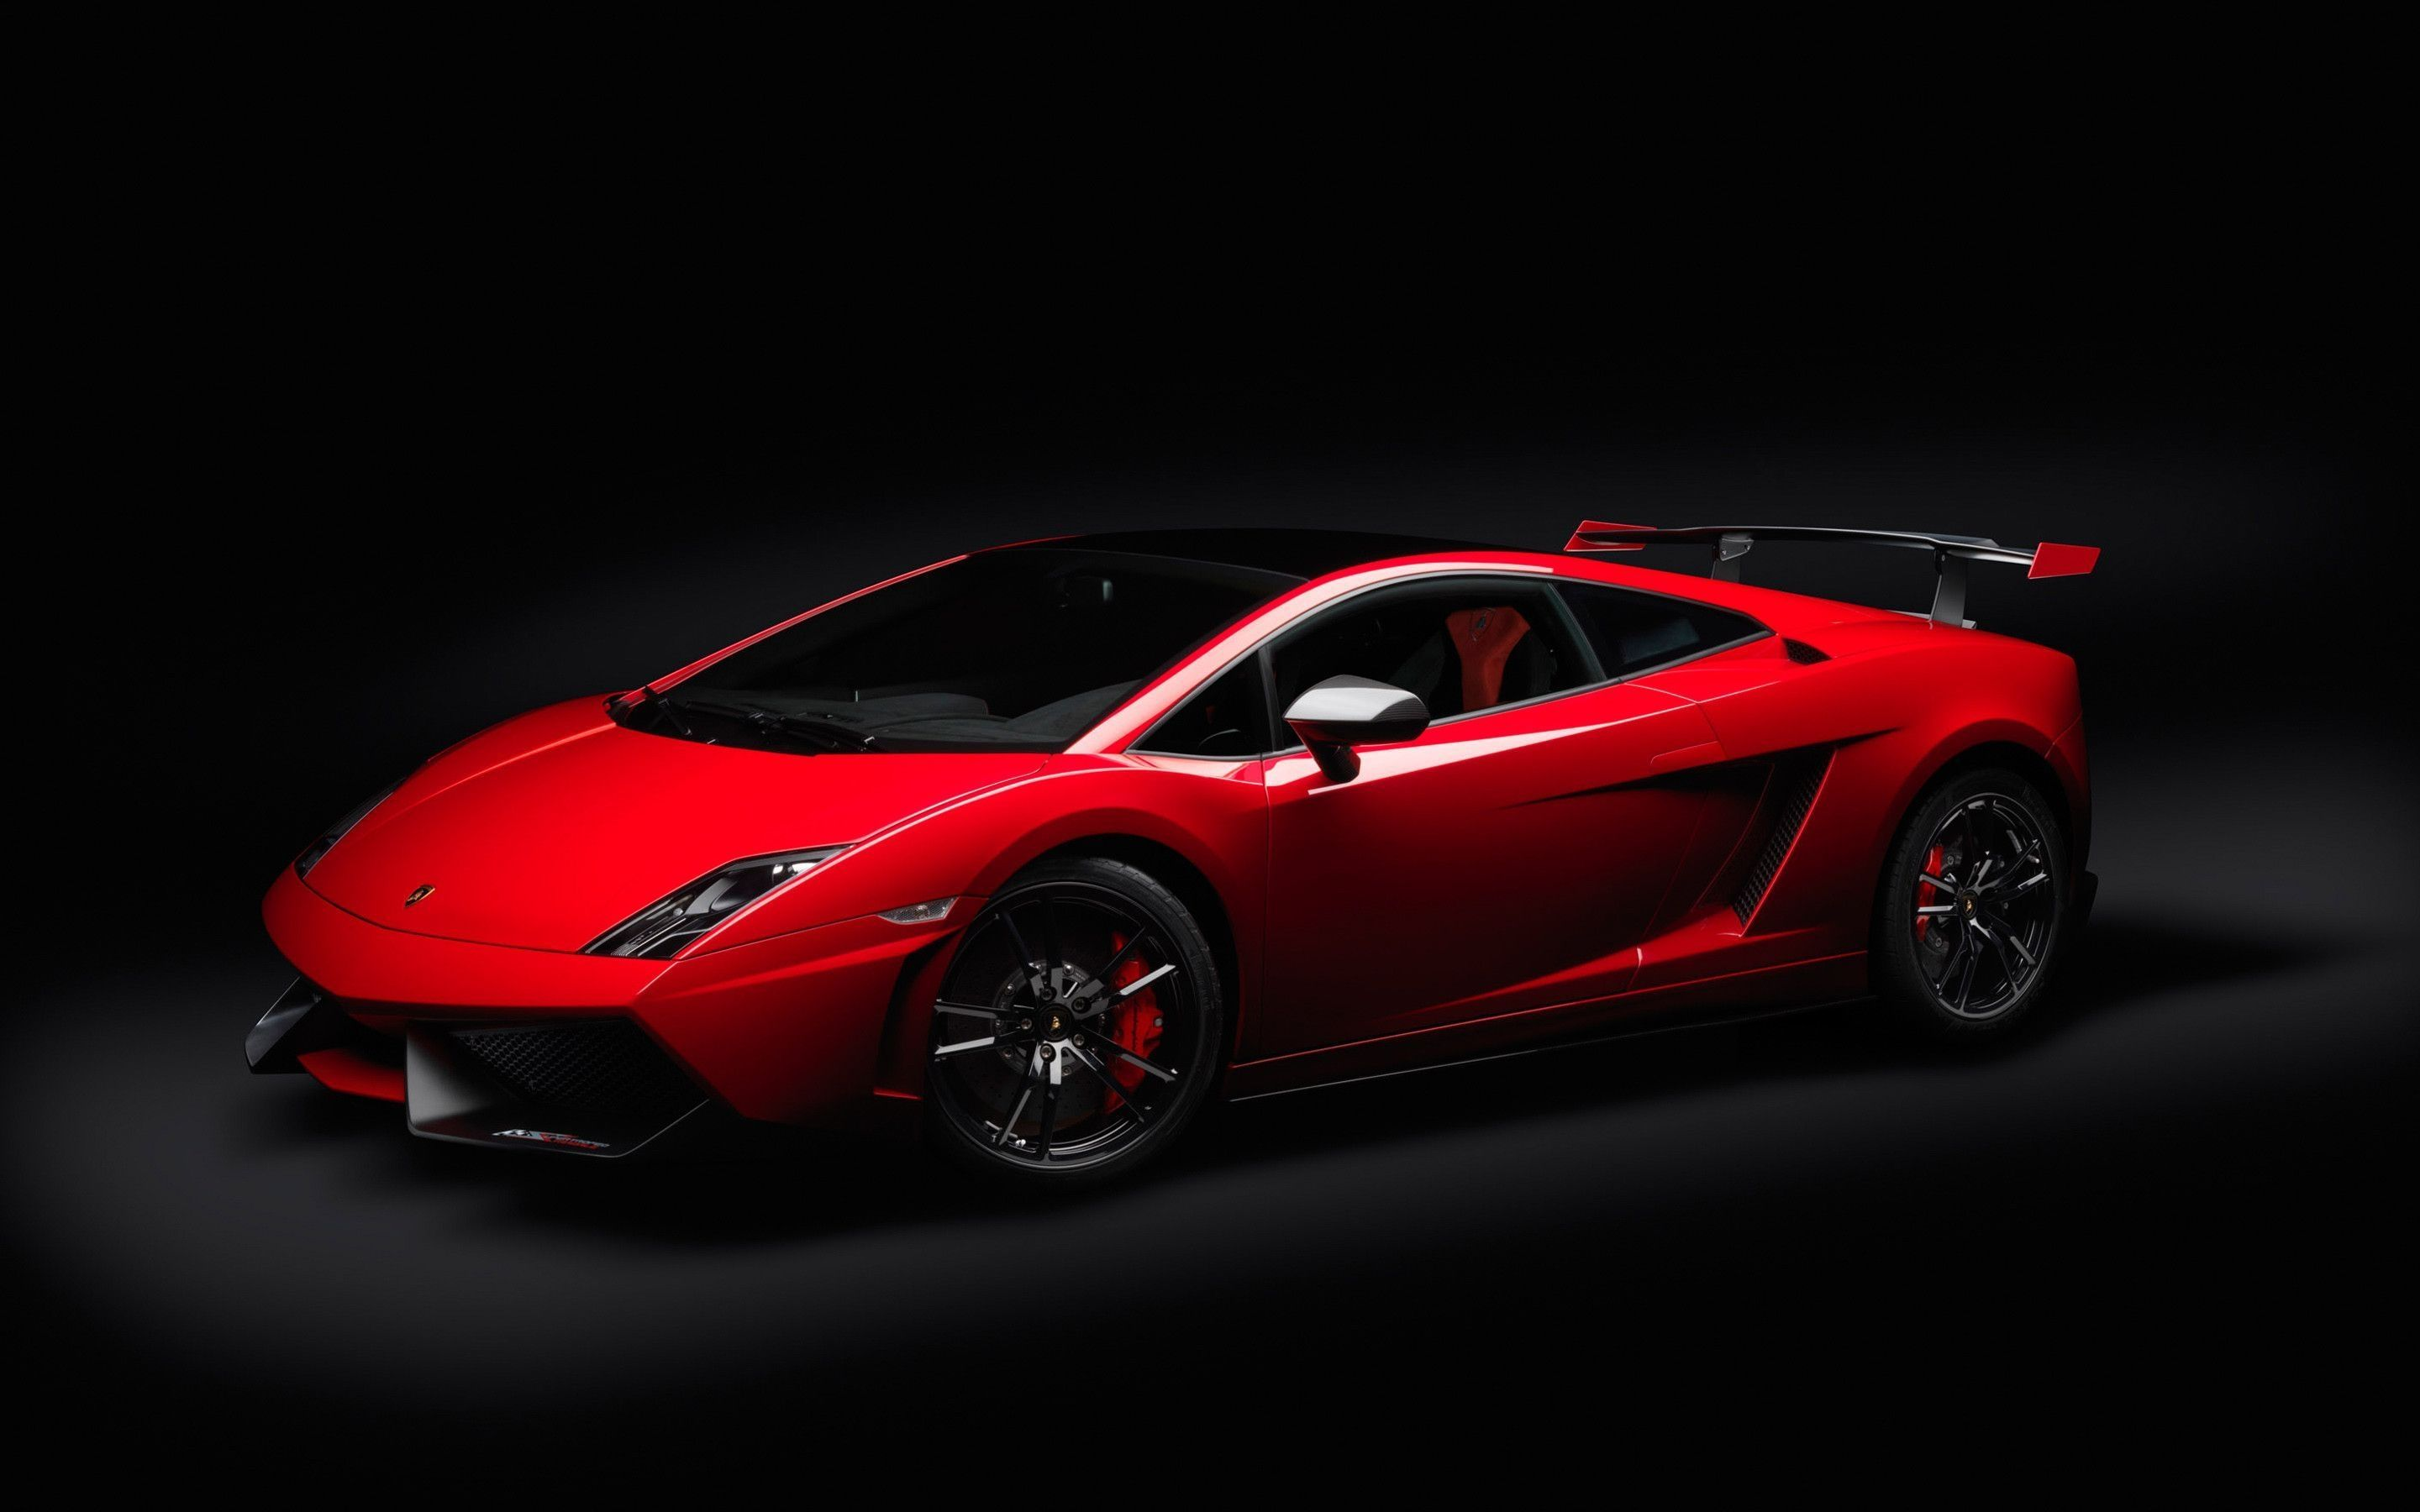 Merveilleux Hd Lamborghini Gallardo Wallpapers | HD Wallpapers | Pinterest | Lamborghini  Gallardo, Lamborghini And Hd Wallpaper